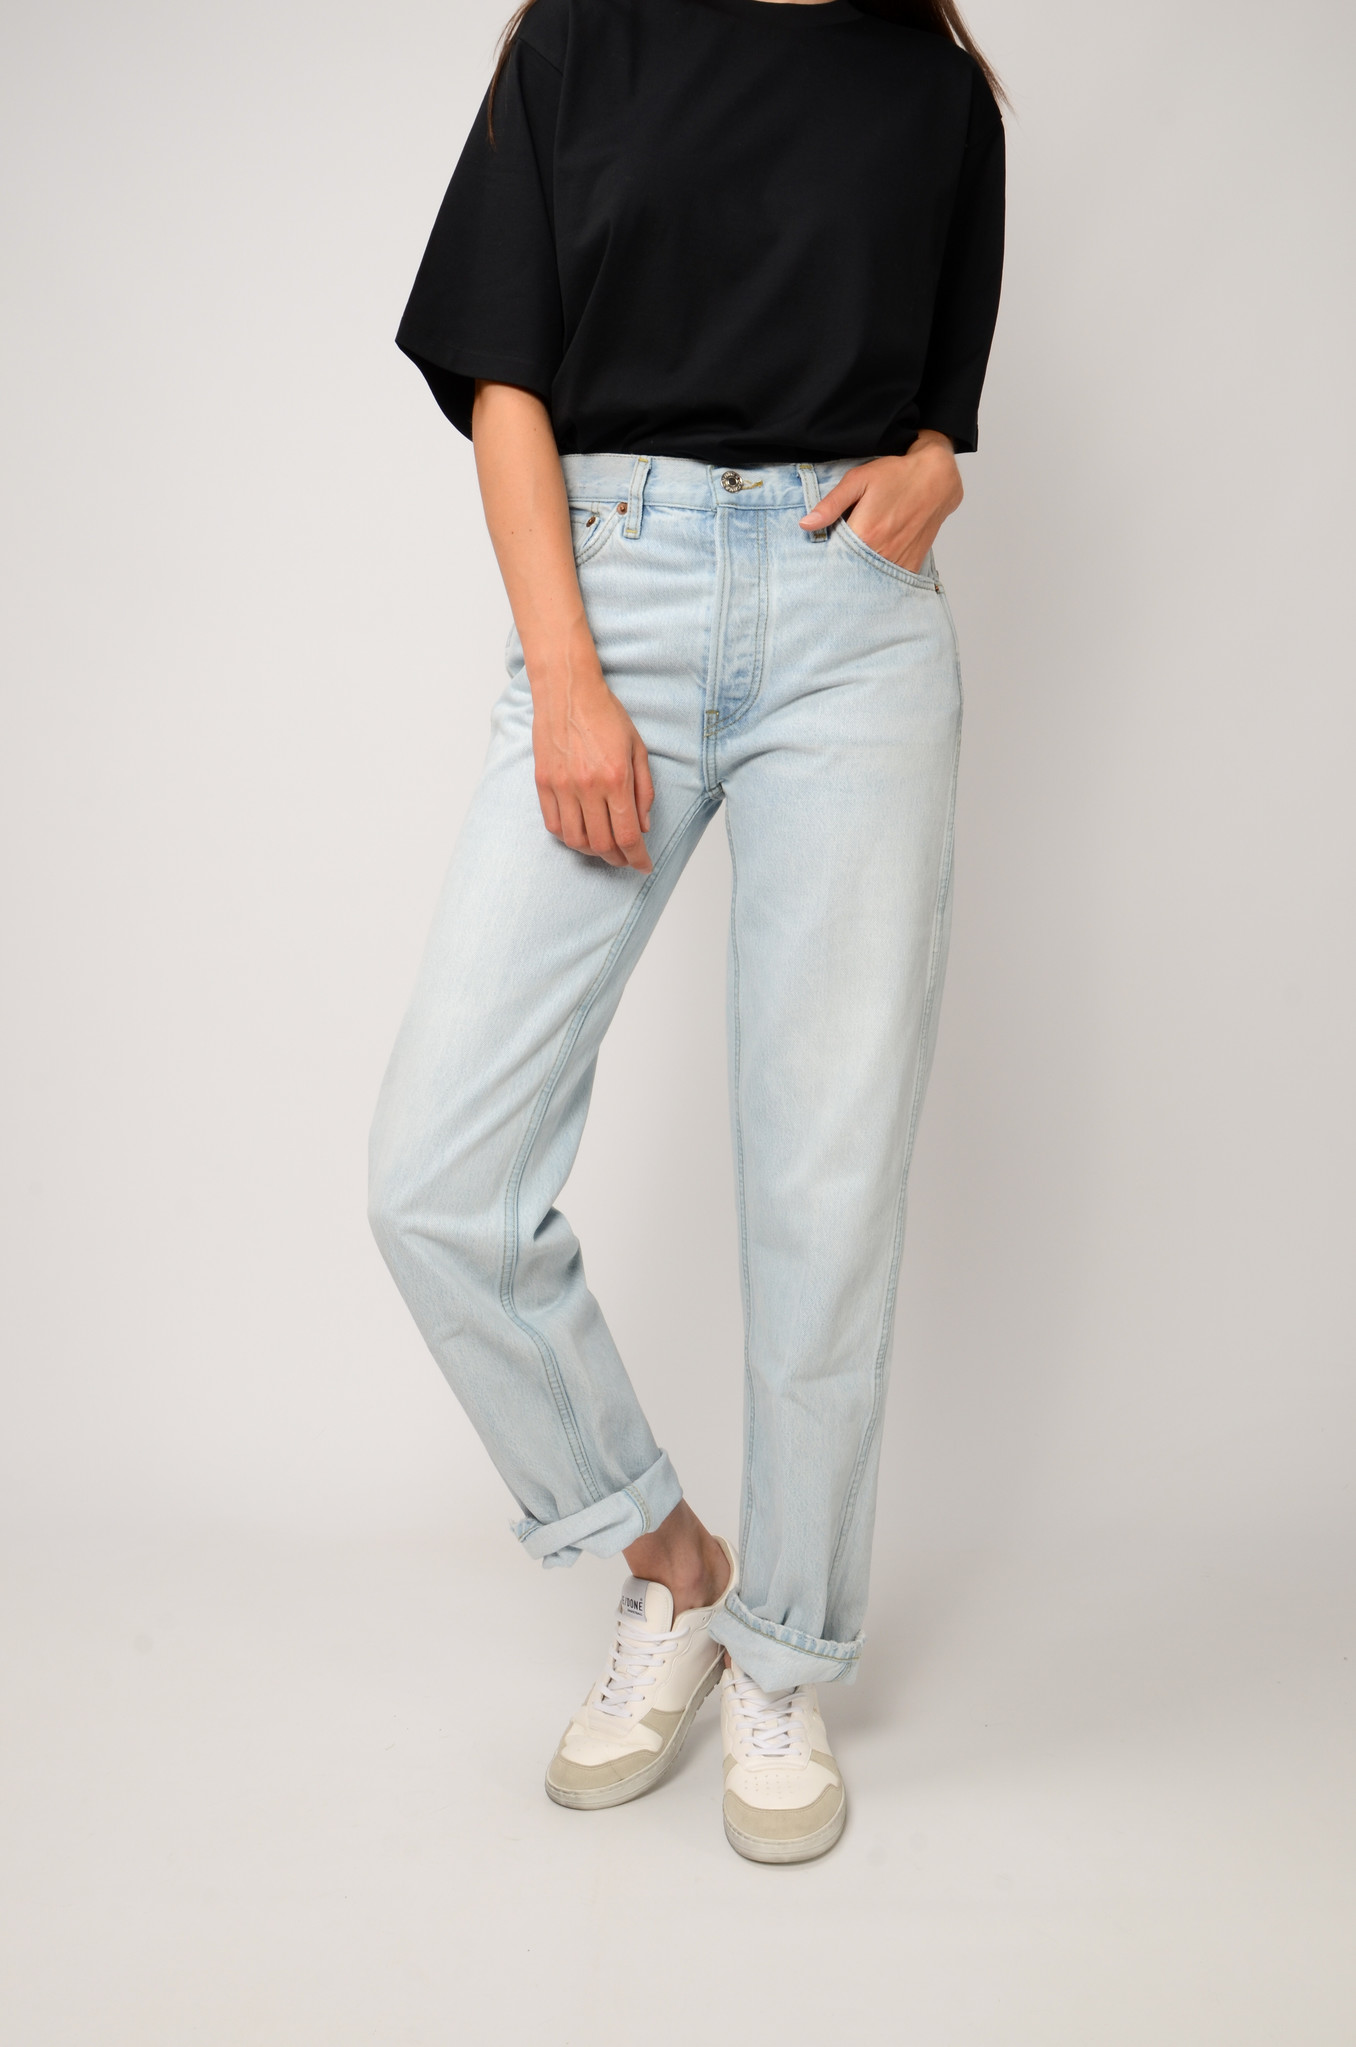 90S HIGH RISE JEANS-5